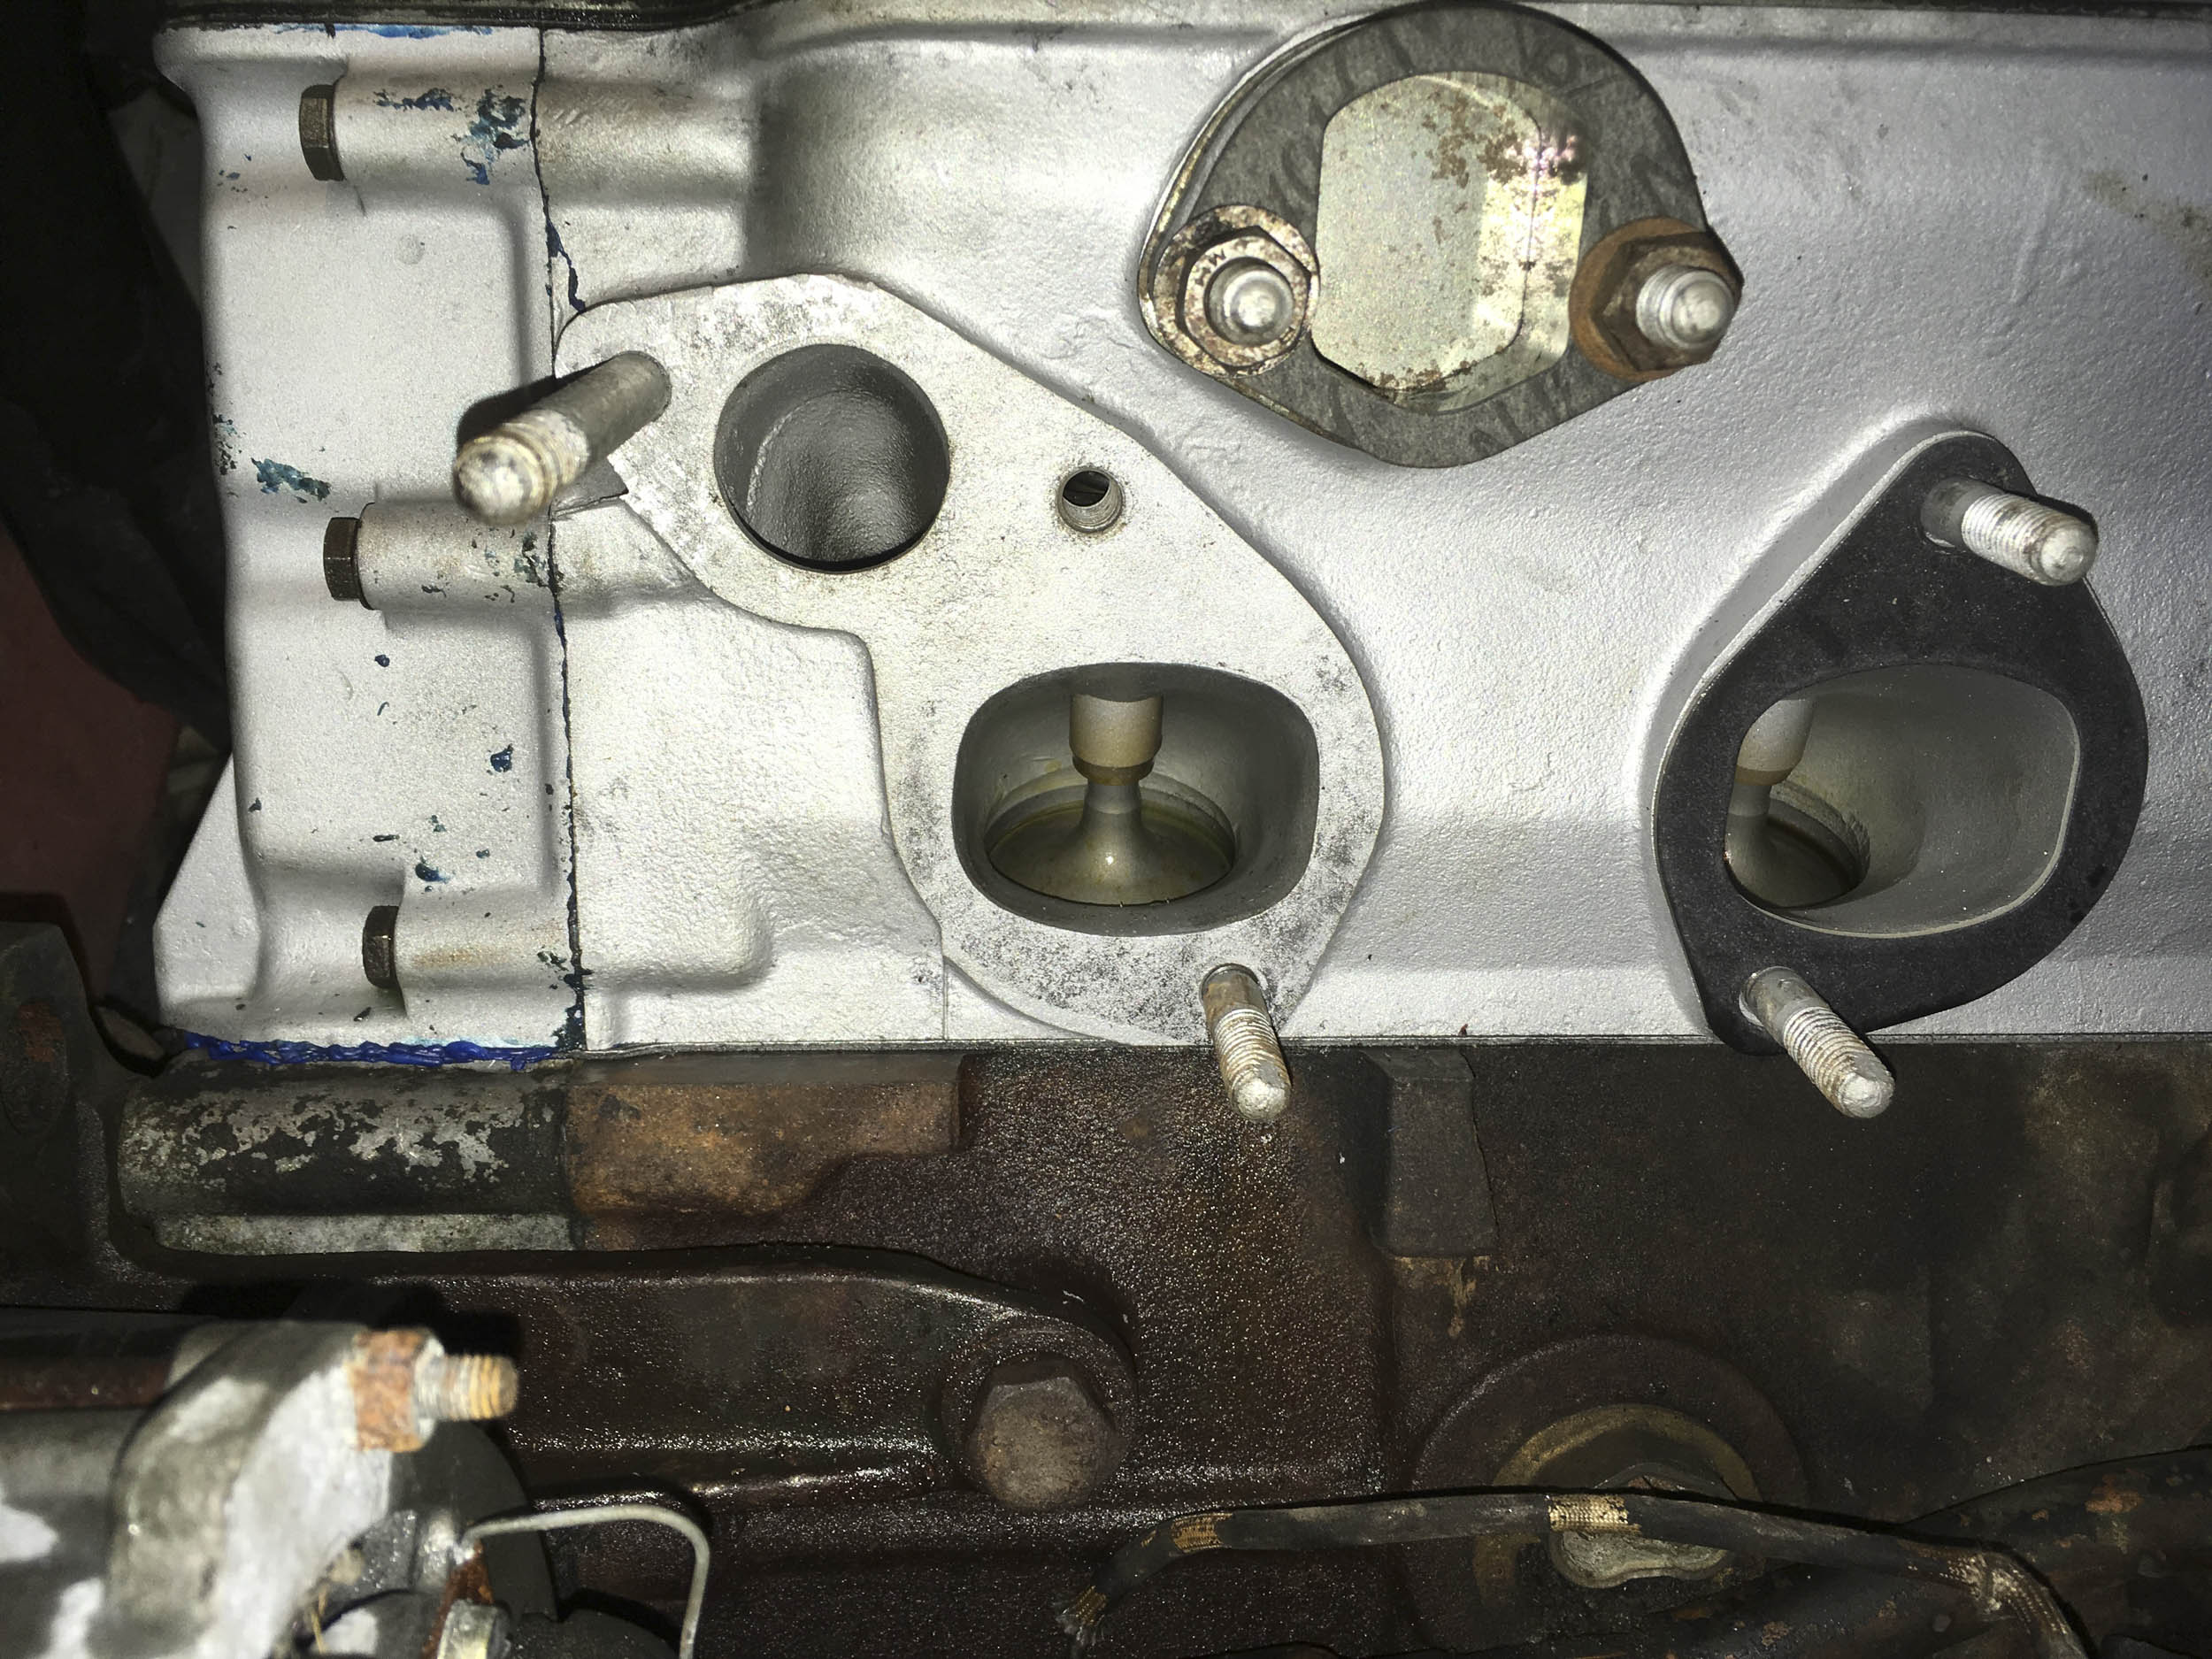 The gasket in this section needs to seal the coolant passage at the upper left. It was removed, coated with gasket sealant, and reinstalled.